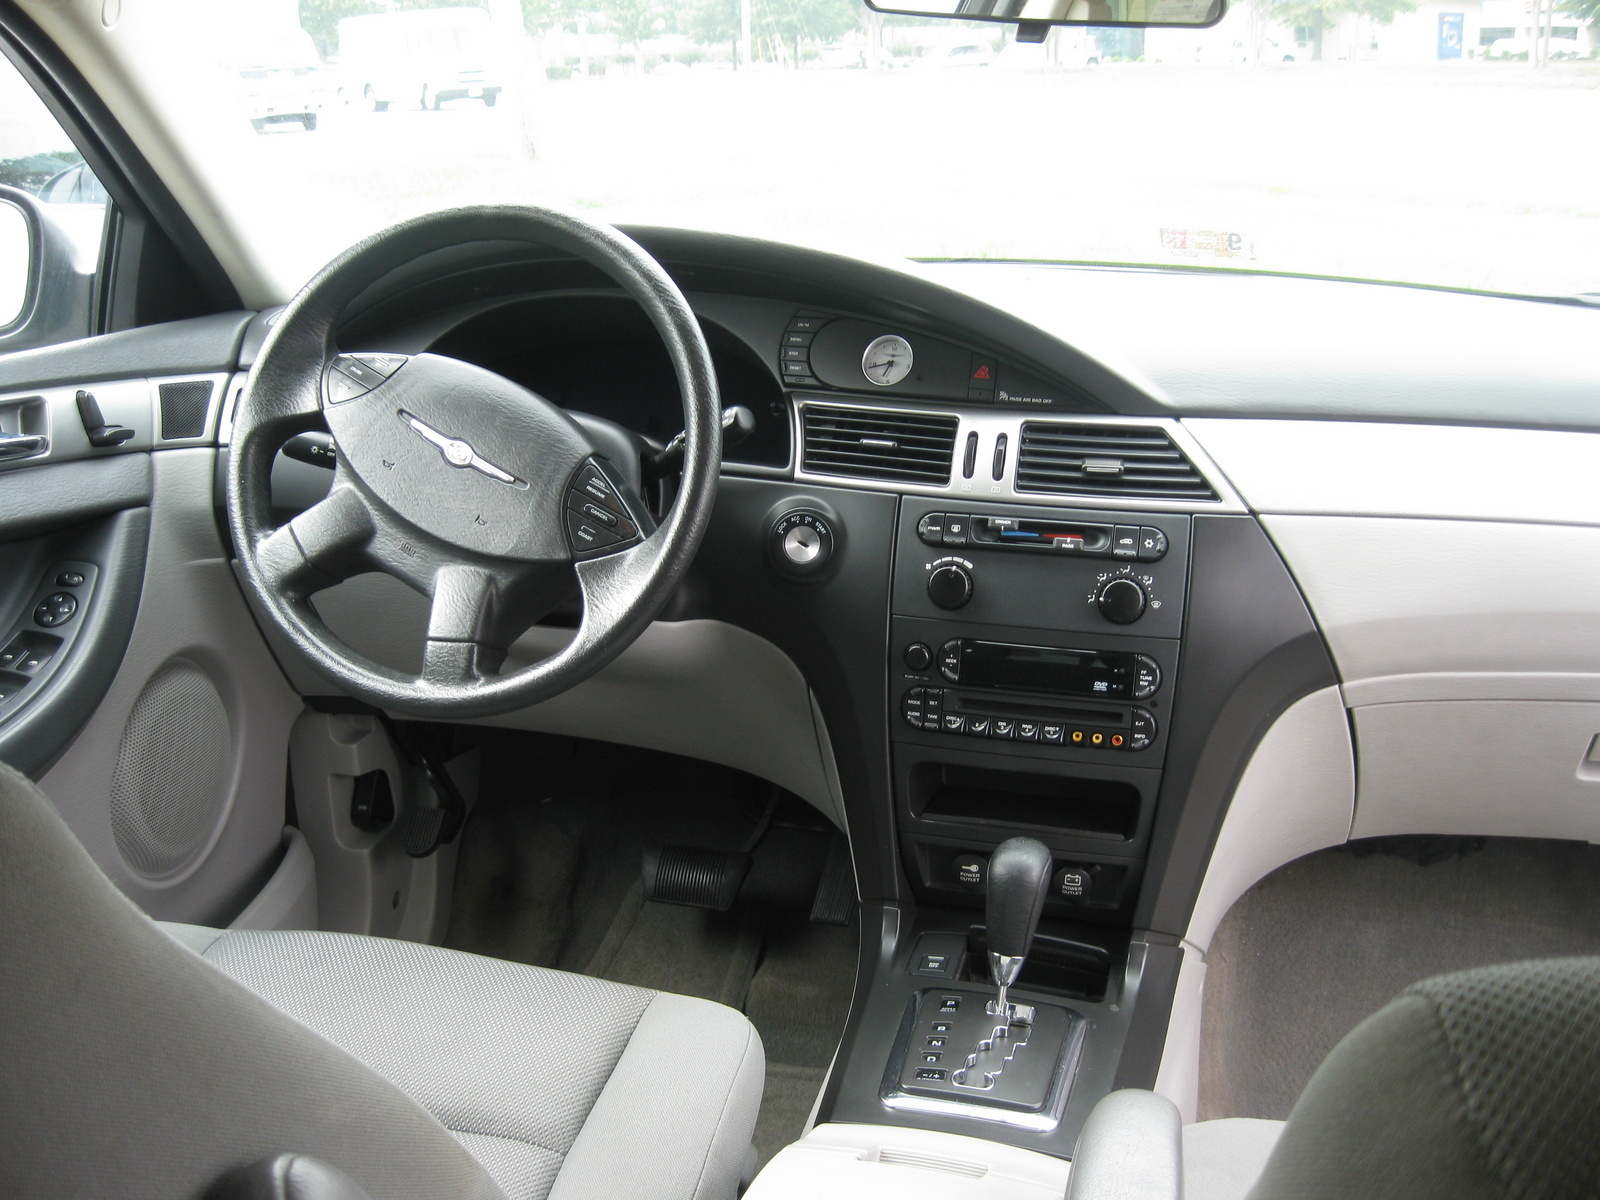 2007 Chrysler Pacifica Touring Interior 2017 2018 Best Cars Reviews